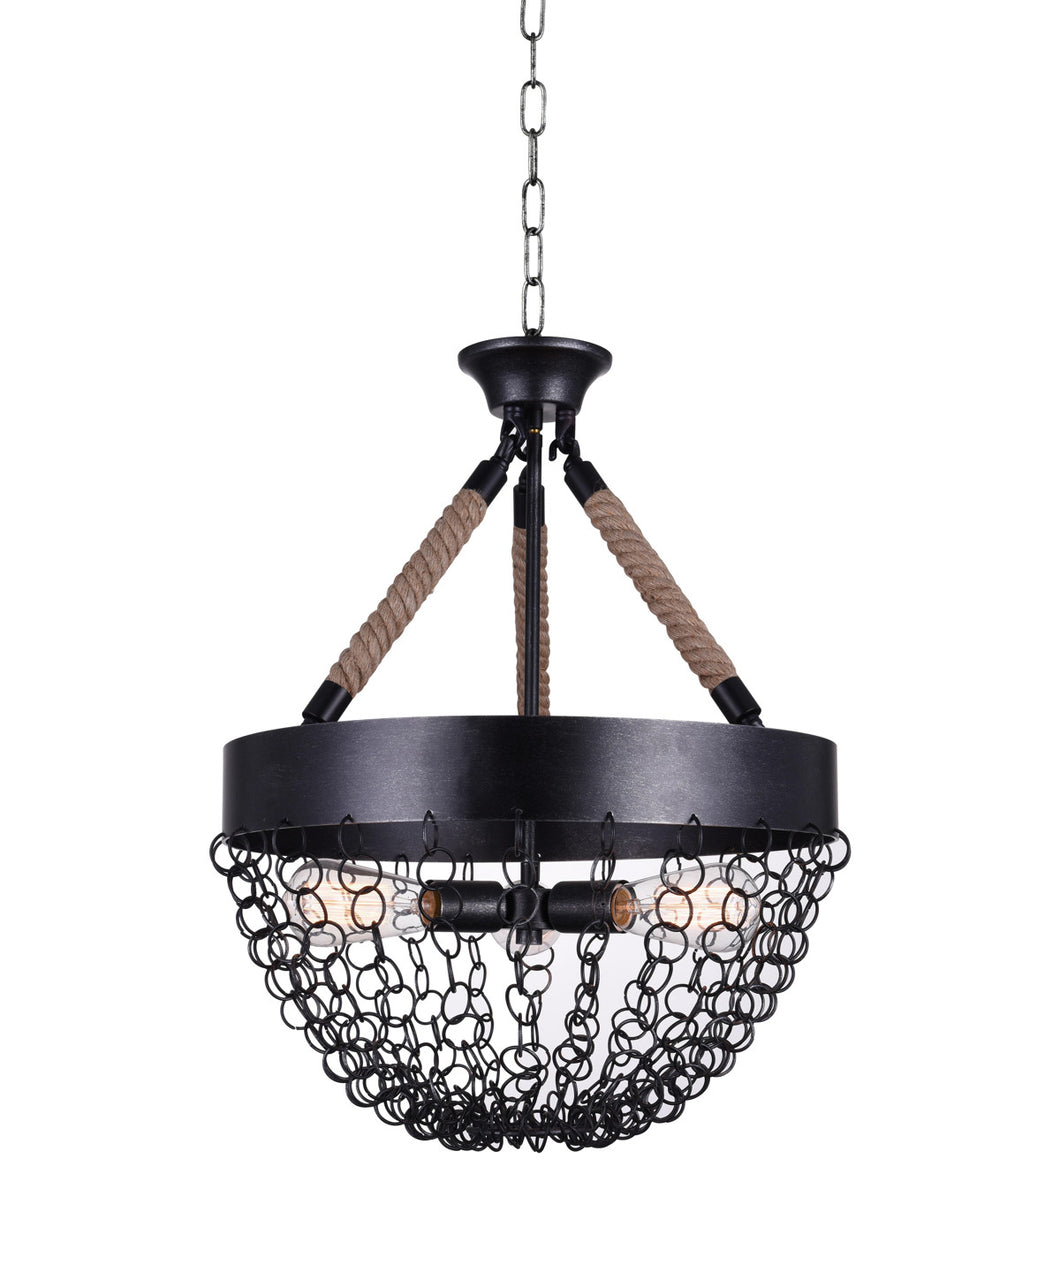 3 Light Down Chandelier with Antique Black finish